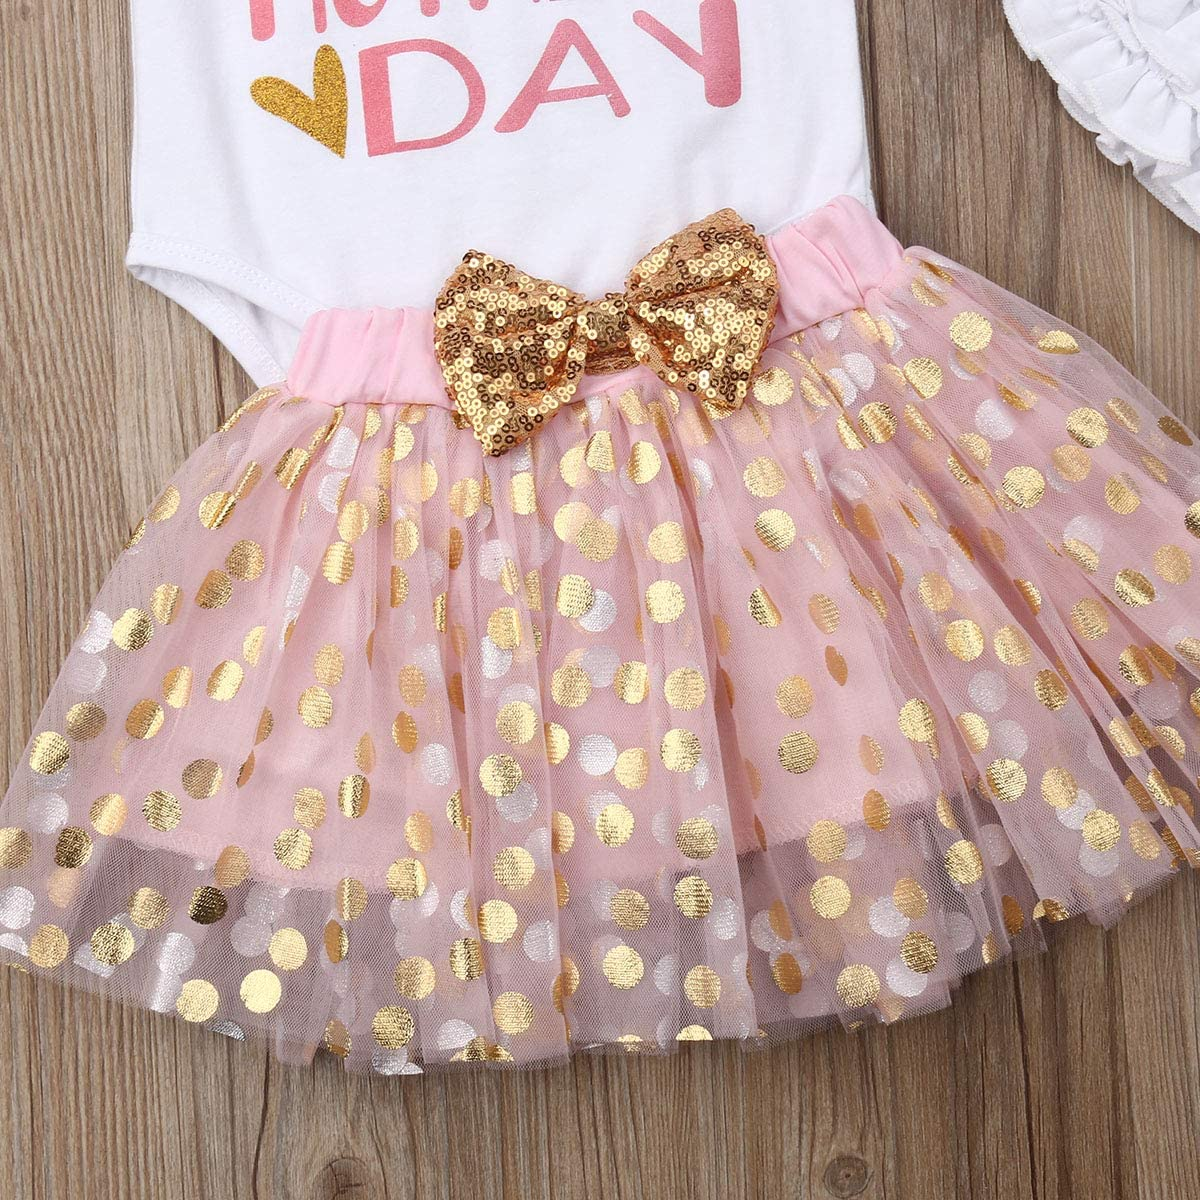 Newborn Baby Girls First Mothers Day Fathers Day Outfits Romper Tutu Skirt Headband Legging Outfits 4PCS Set